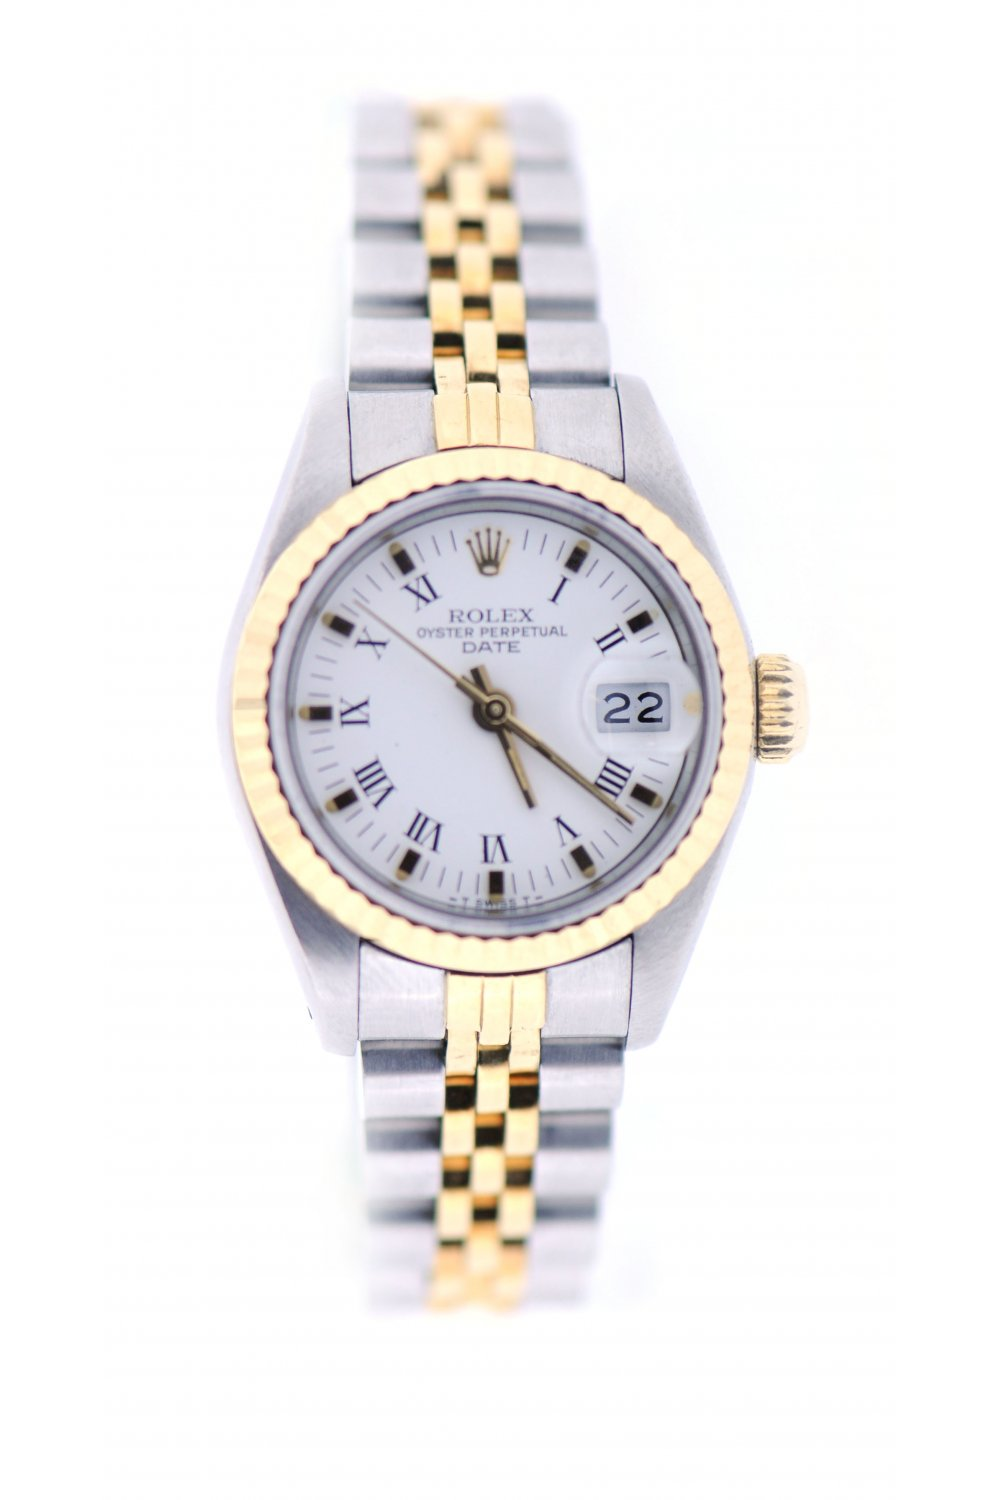 Buy Sell Trade Used Rolex Second Hand Watches Autos Post